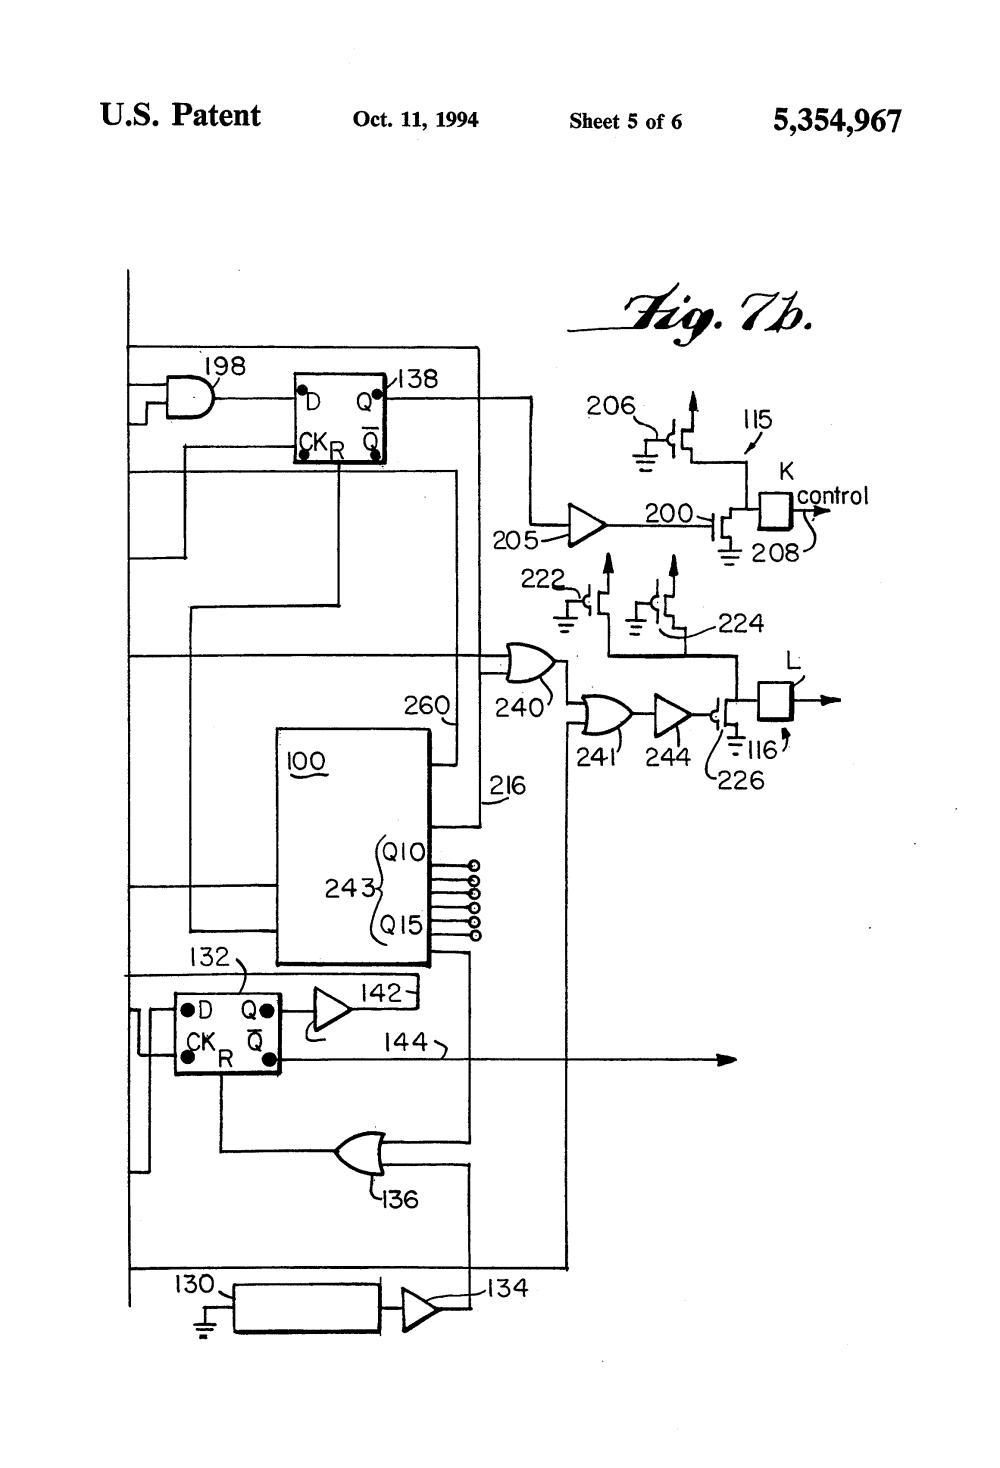 medium resolution of patente us hair styling appliance heater and control patent drawing schematic diagram of electric iron schematic image